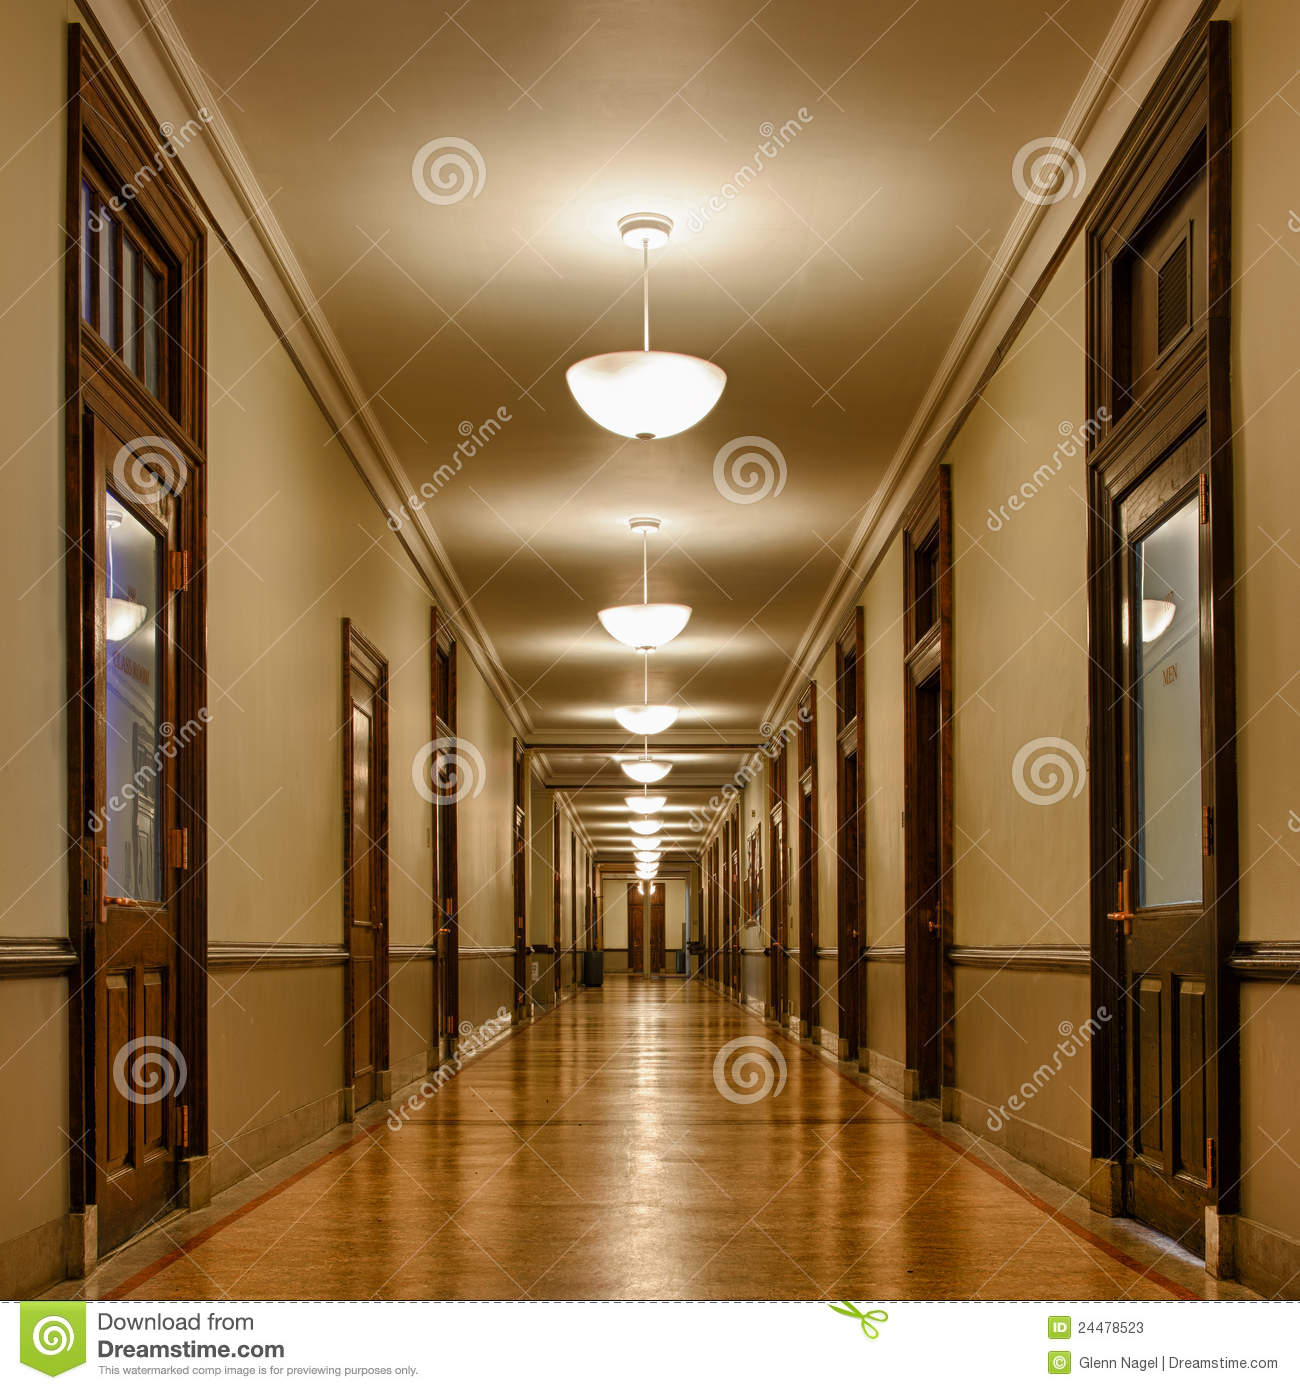 Long Hallway Of Classrooms Stock Photos Image 24478523